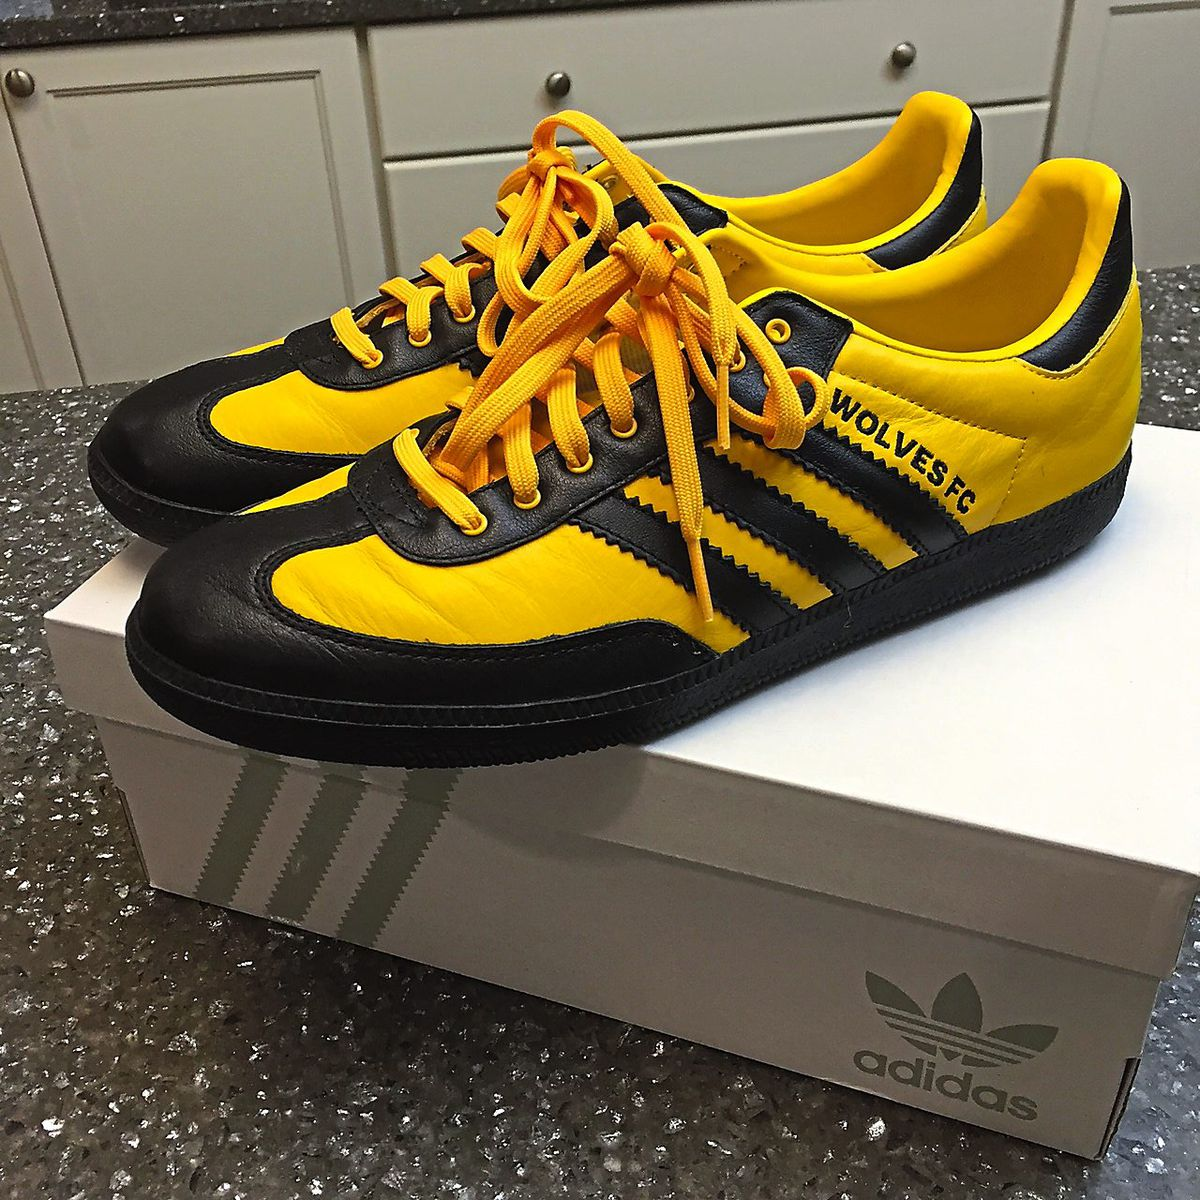 Customised Wolves trainers – fans can collect all sorts of memorabilia